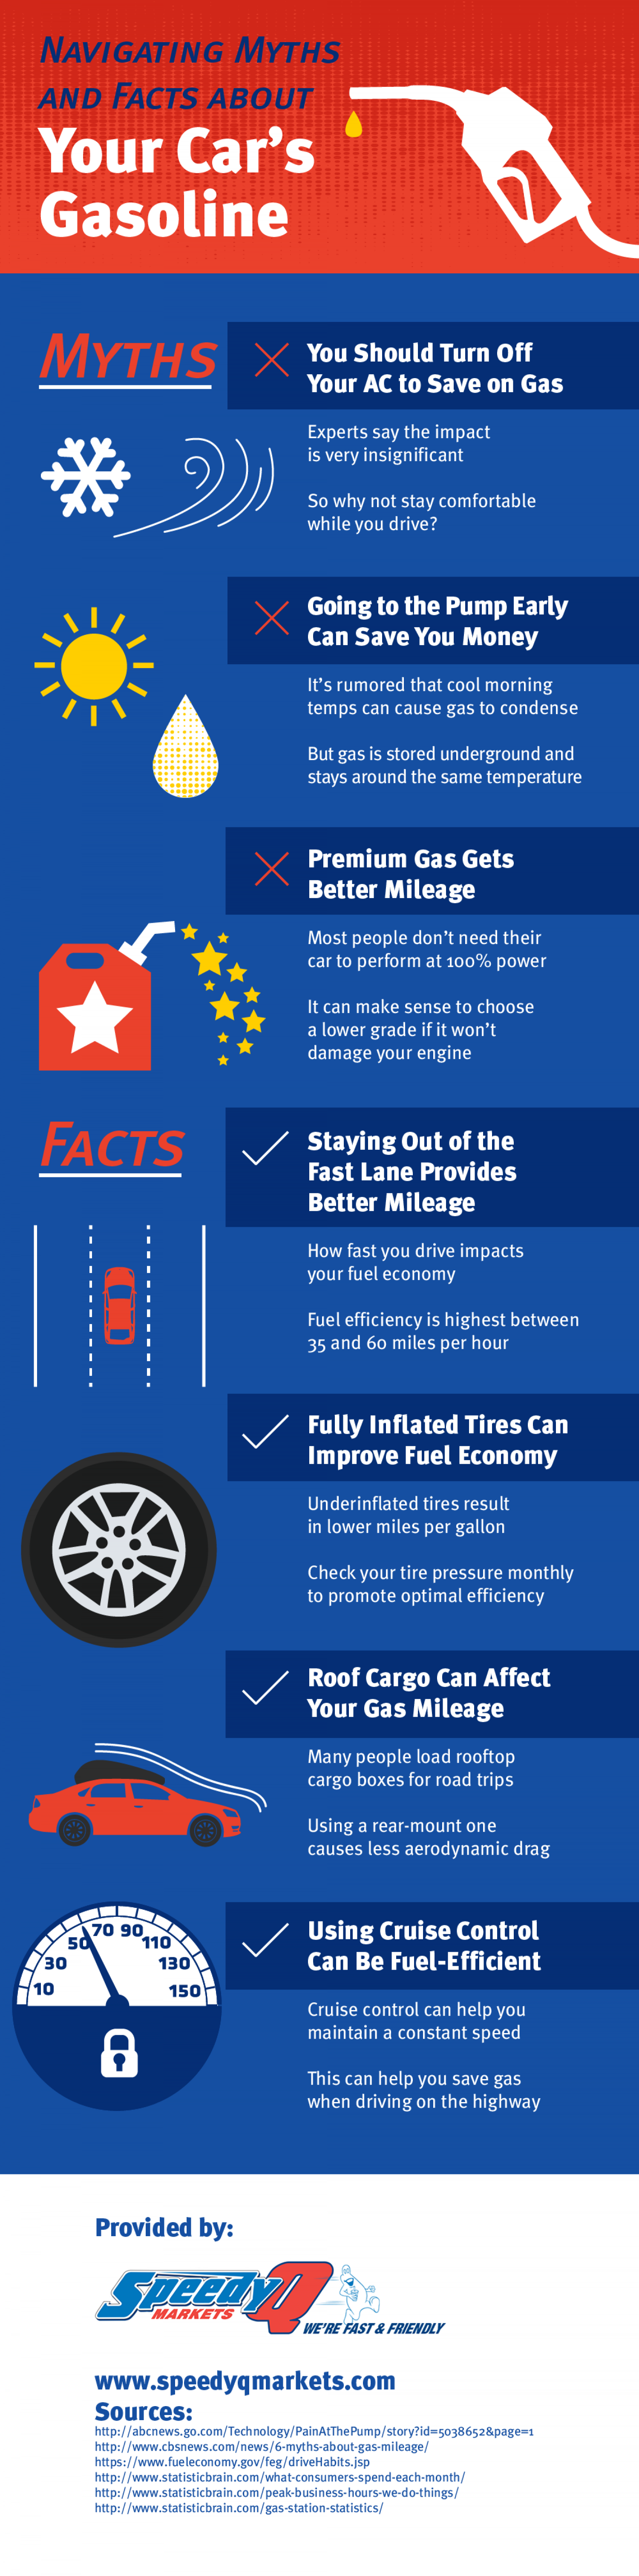 Navigating Myths and Facts about Your Car's Gasoline Infographic